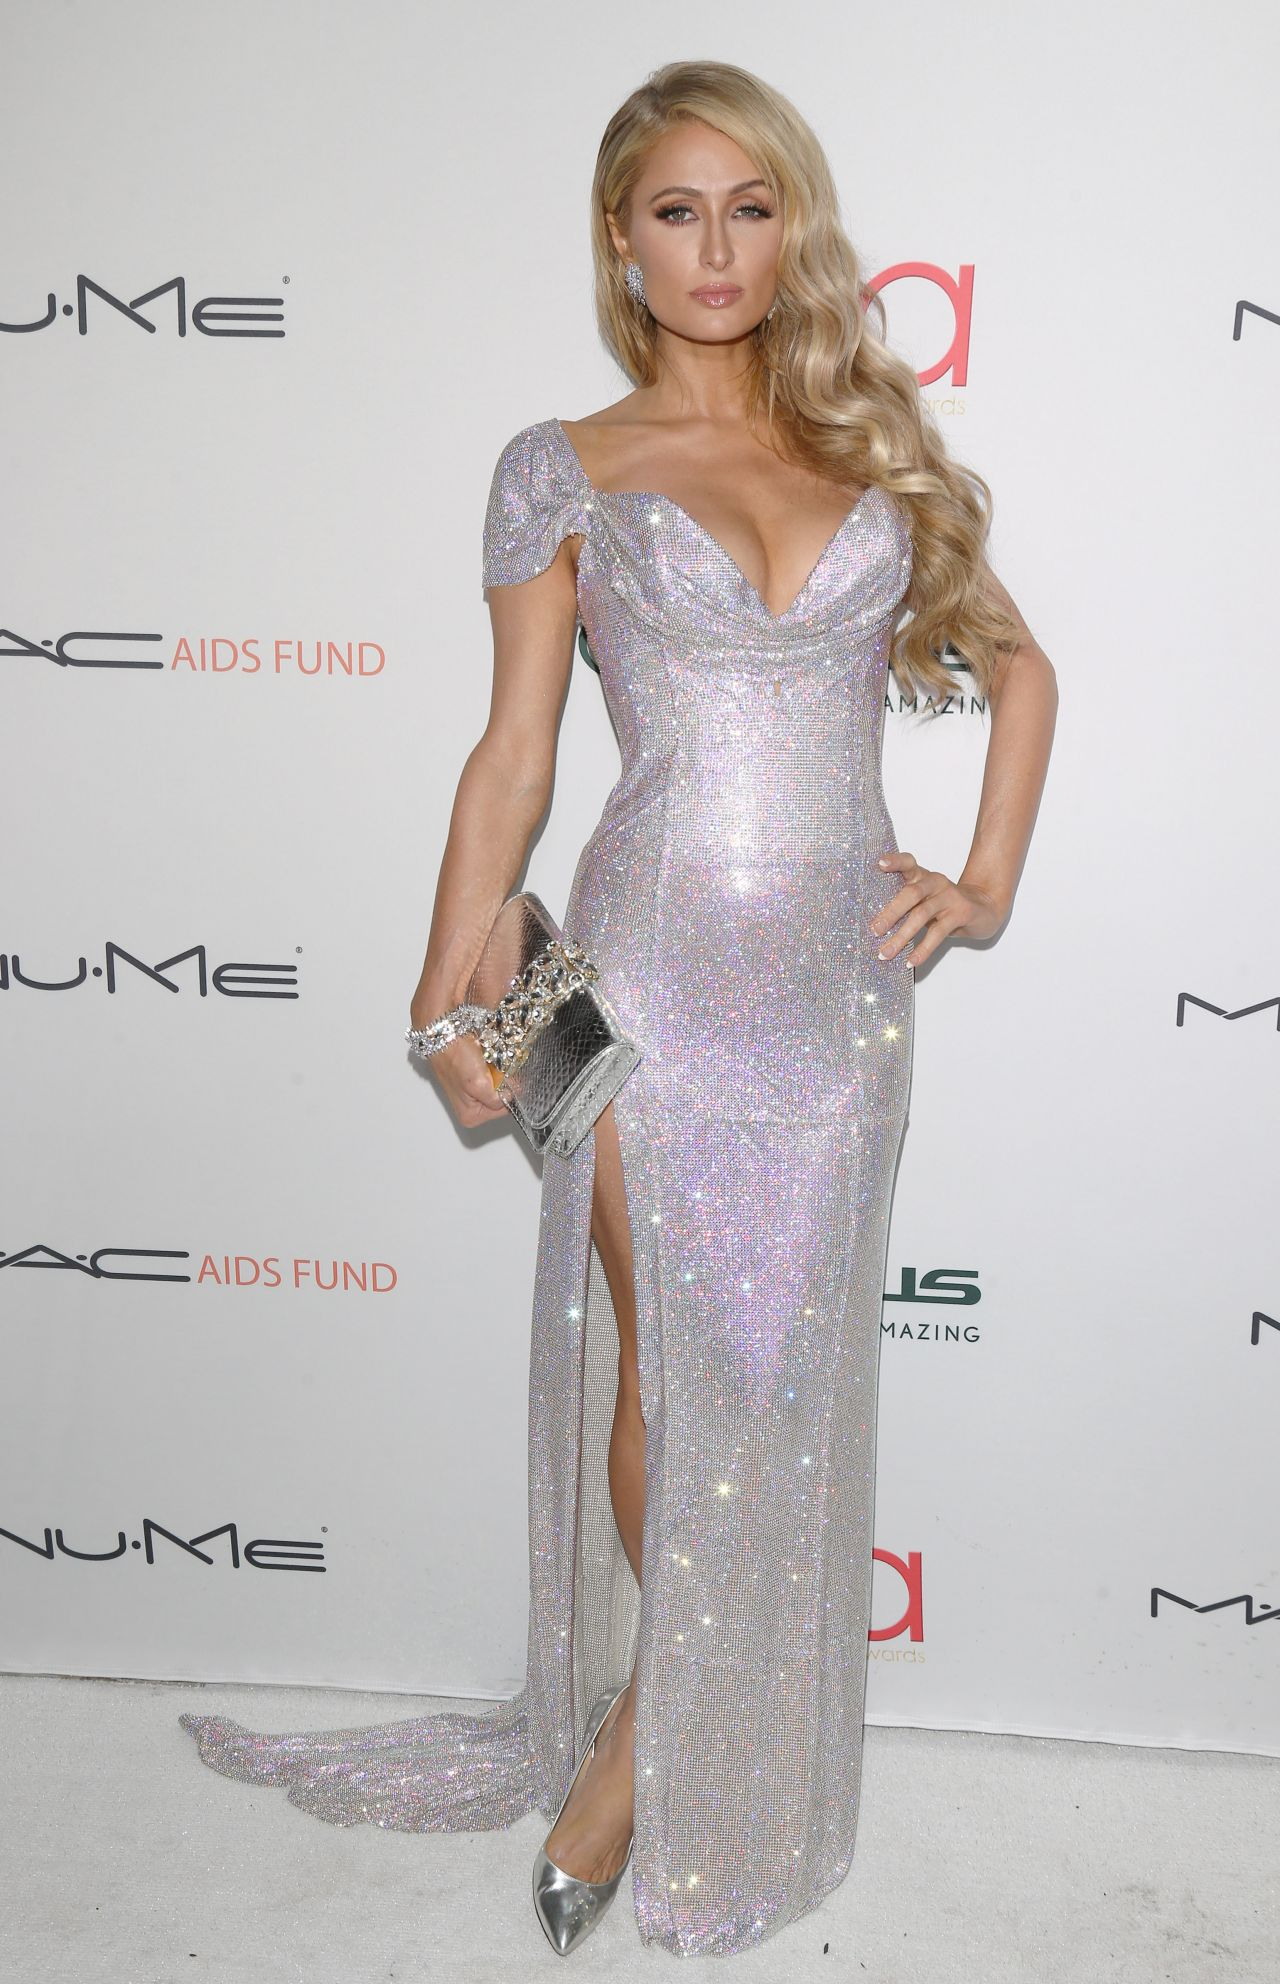 paris-hilton-hollywood-beauty-awards-at-avalon-in-la-2-19-2017-1.jpg